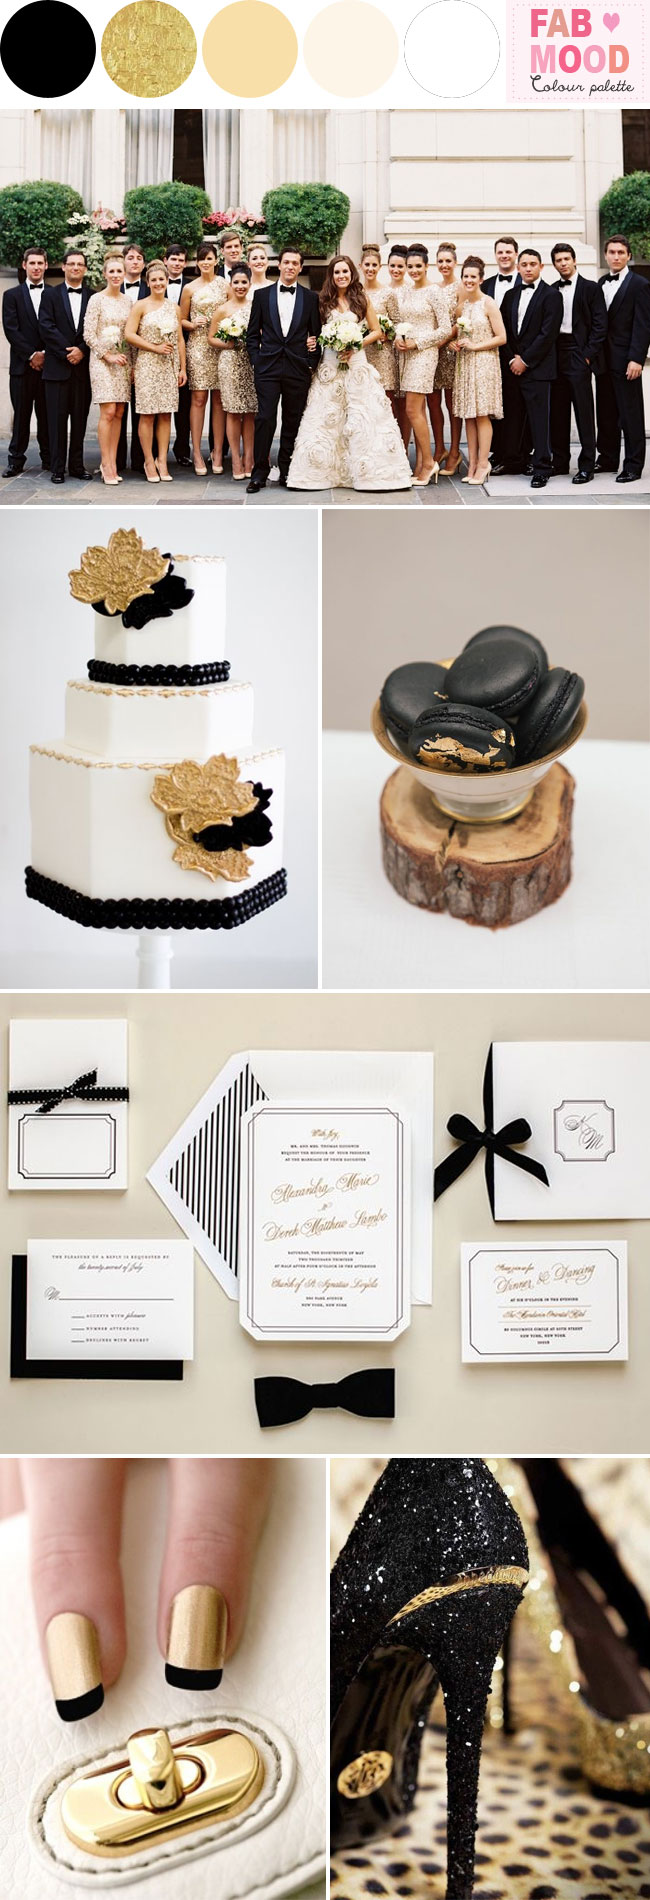 Glamour Wedding Ideas Black Gold Weding Theme